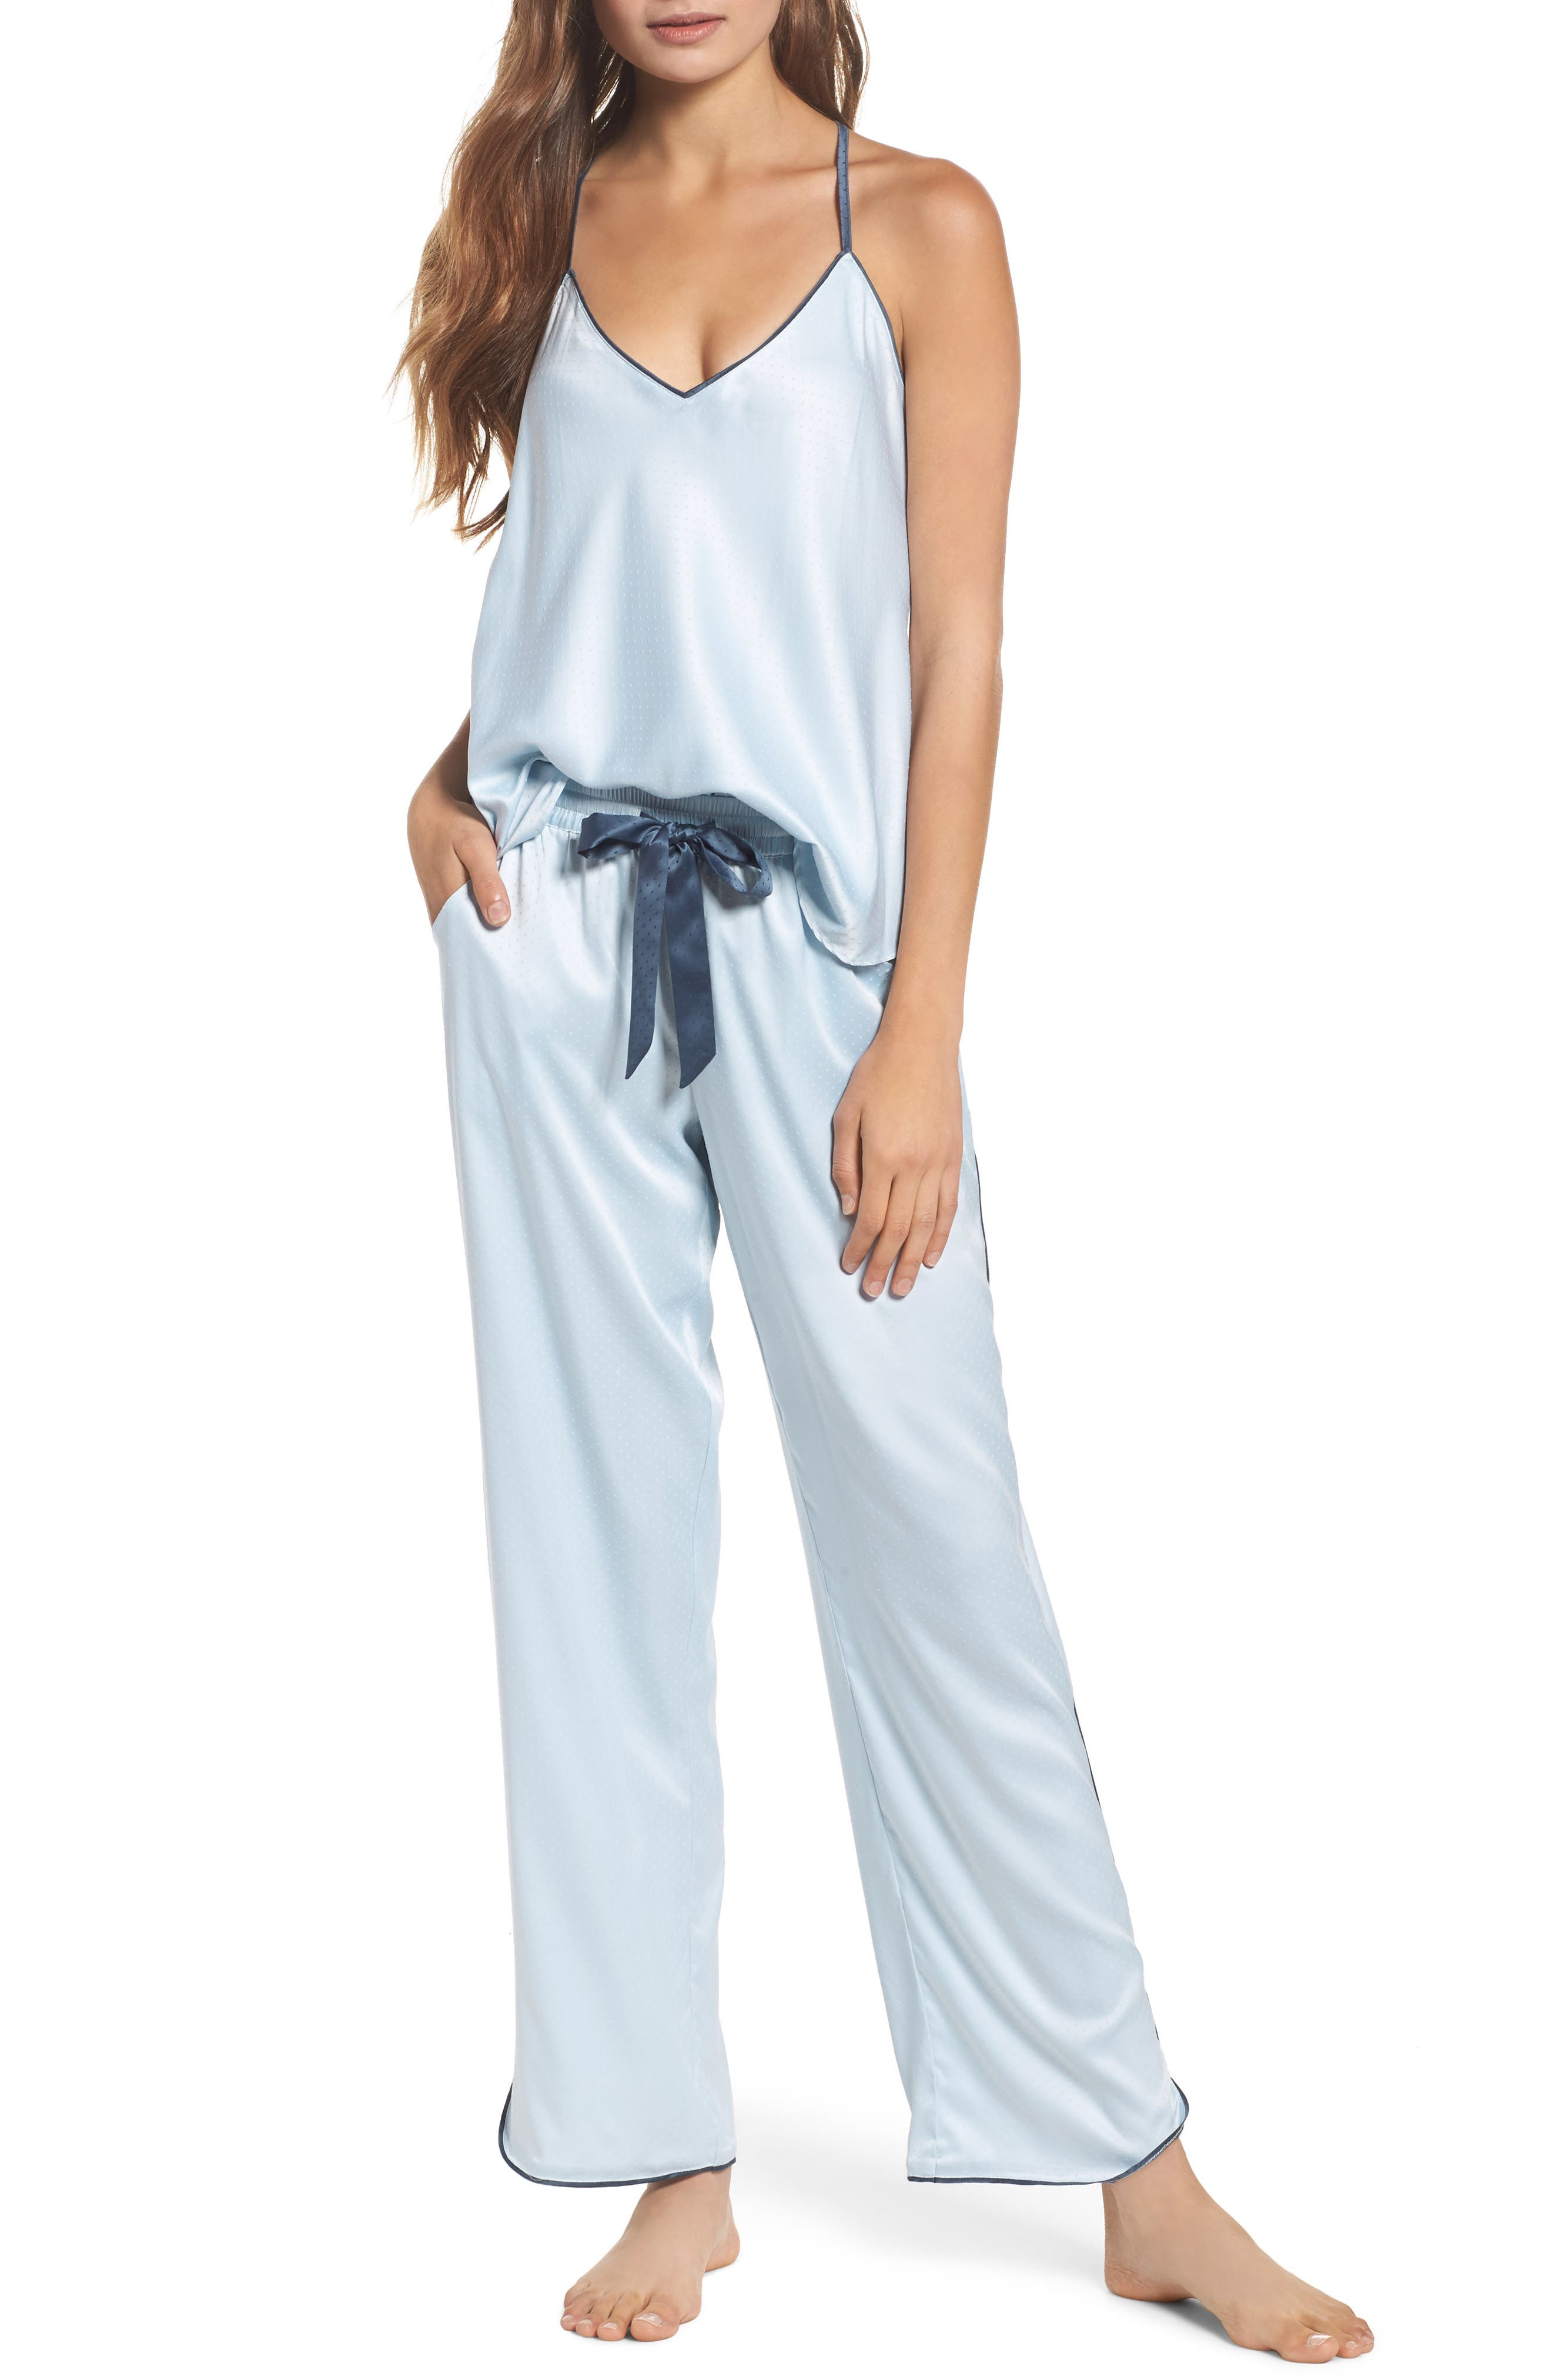 Chelsea27 Late Nights Satin Lounge Pants,                             Alternate thumbnail 4, color,                             Blue Drift